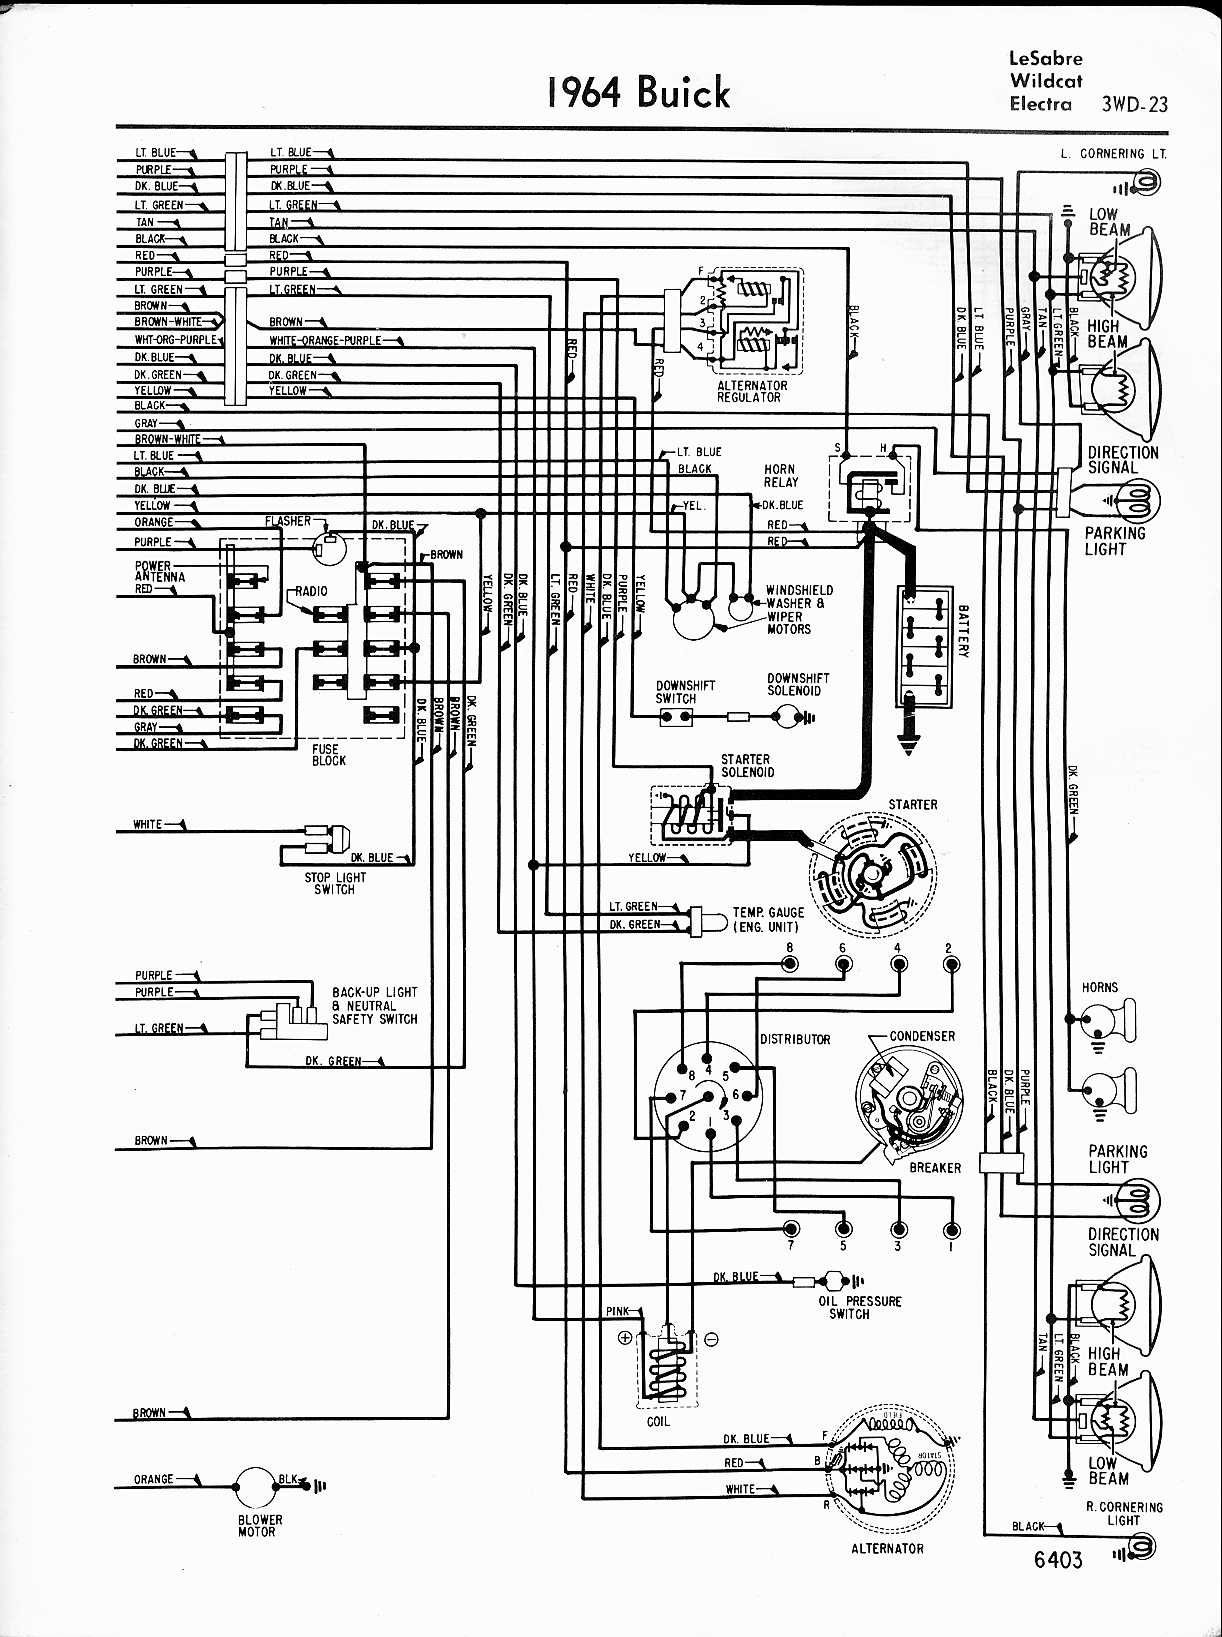 MWireBuic65_3WD 023 2001 buick regal wiring diagram 2001 mazda tribute wiring diagram 2003 buick century wiring diagrams at bayanpartner.co